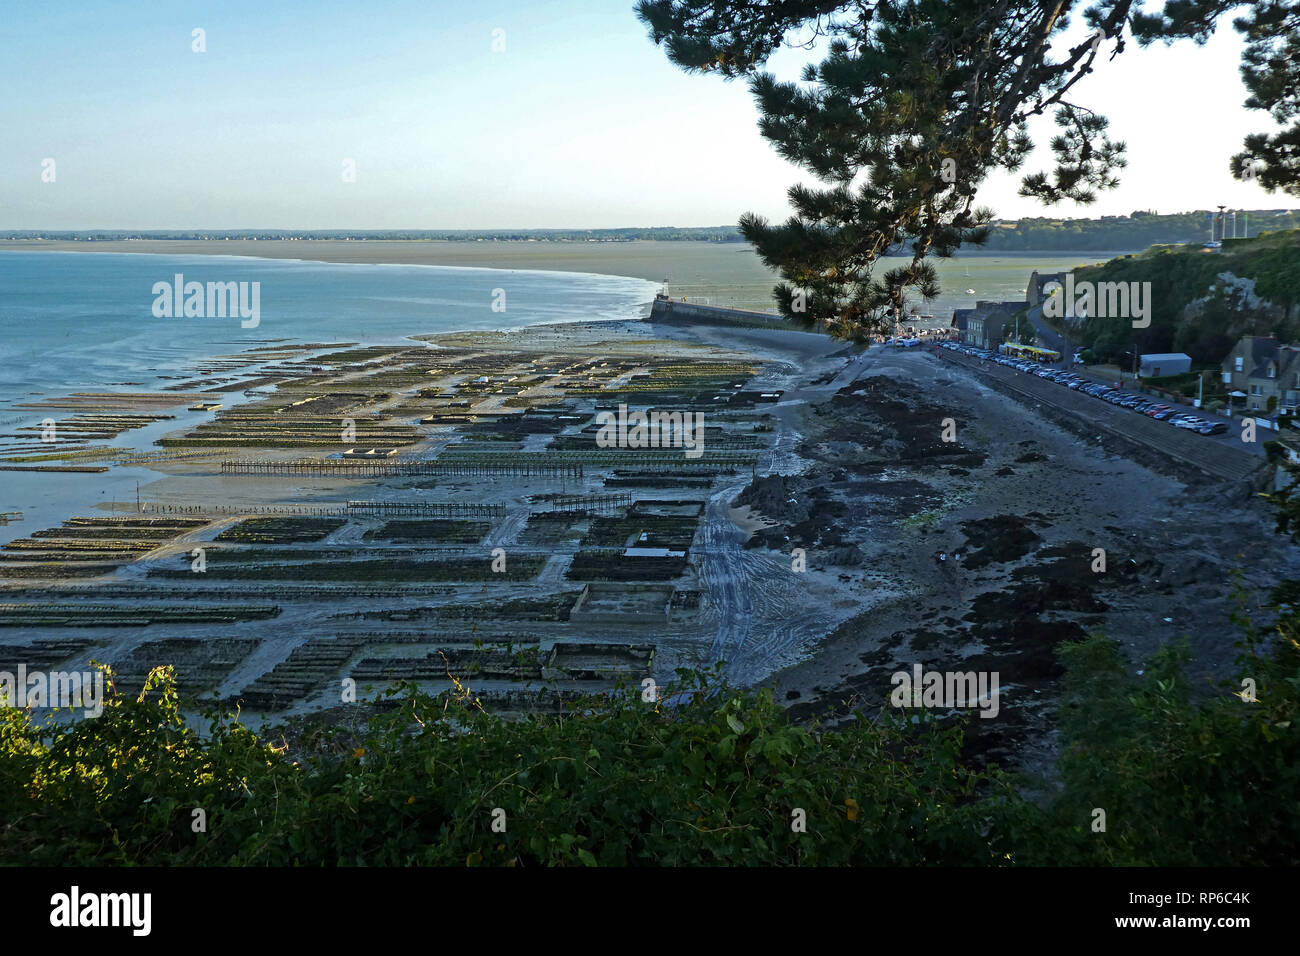 Cancale, oyster beds, Bretagne, Brittany, Ille-et-Vilaine, France, Europe Stock Photo